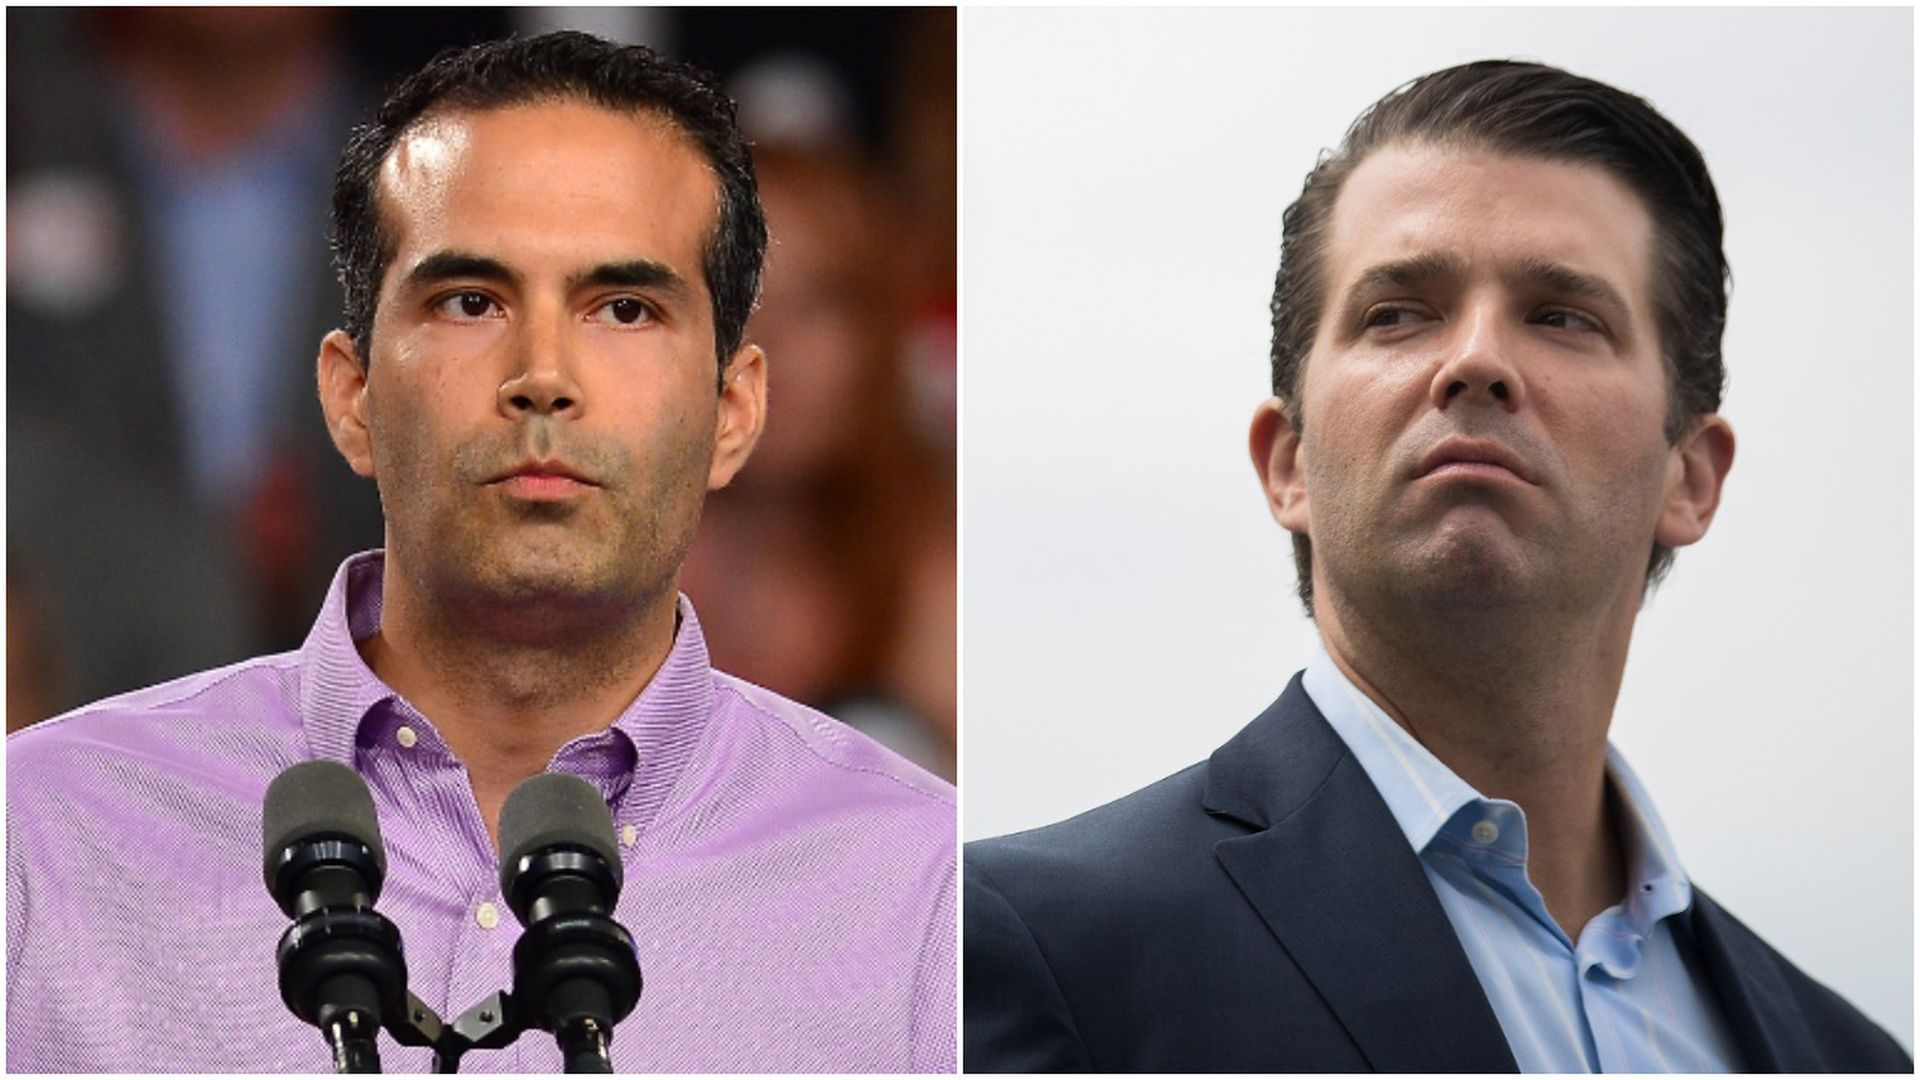 Close ups of George P. Bush on the left, and Donald Trump Jr. on the right